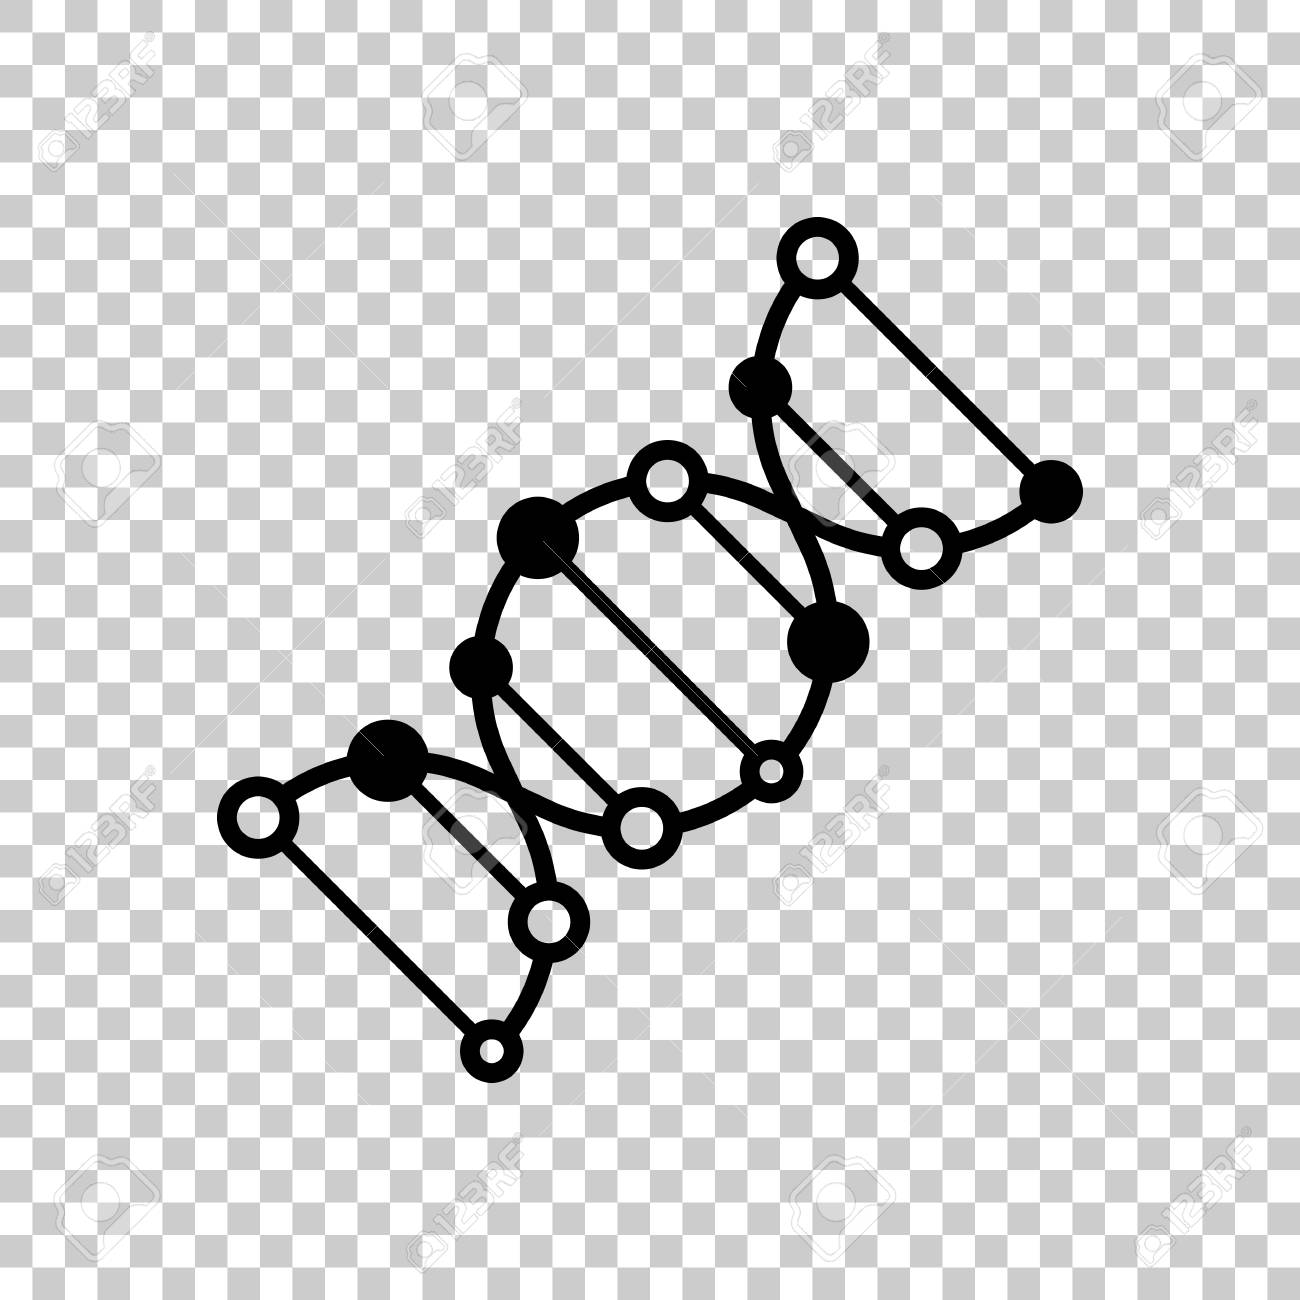 dna icon. black icon on transparent background. royalty free